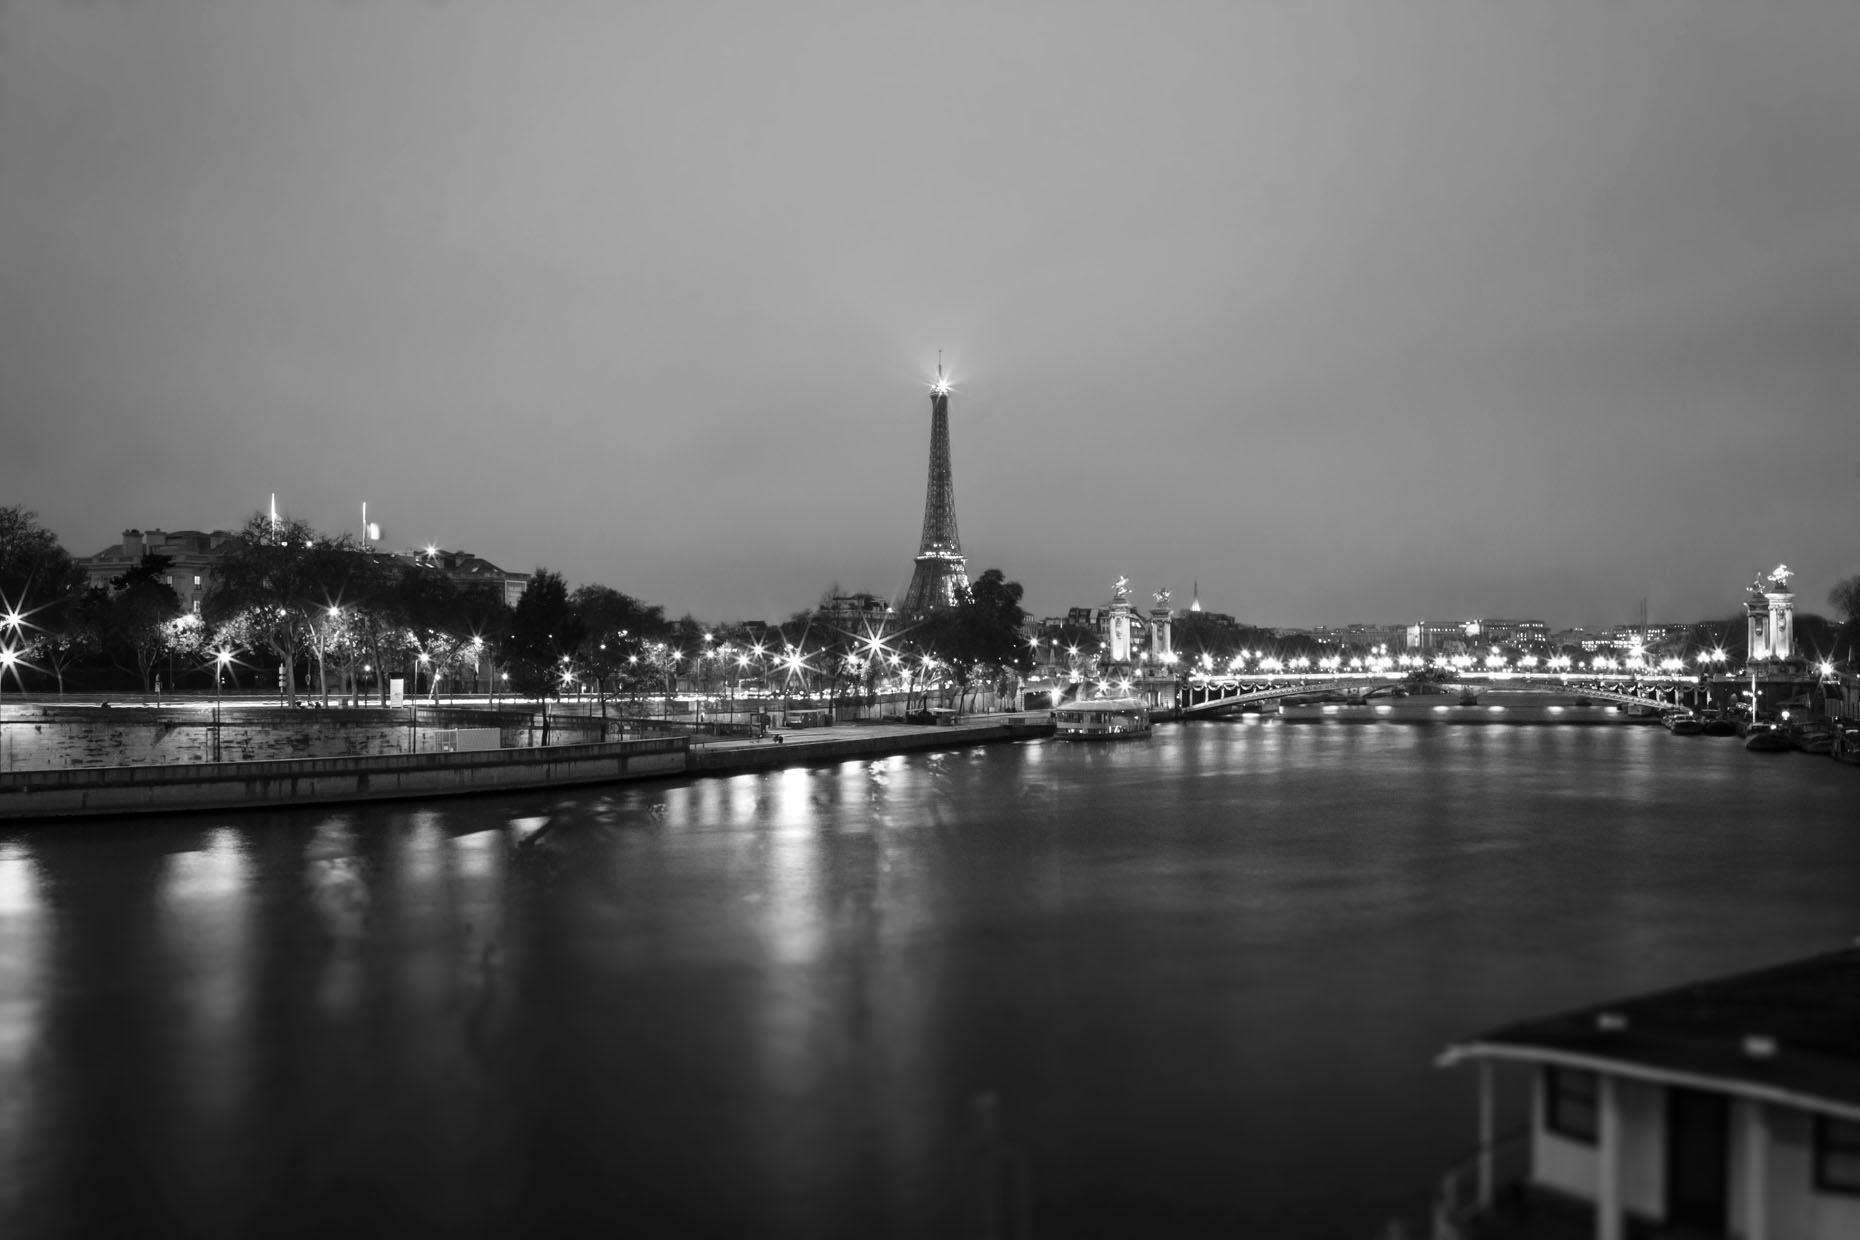 France_Paris_IMG_3608-e-bw_webuse.jpg